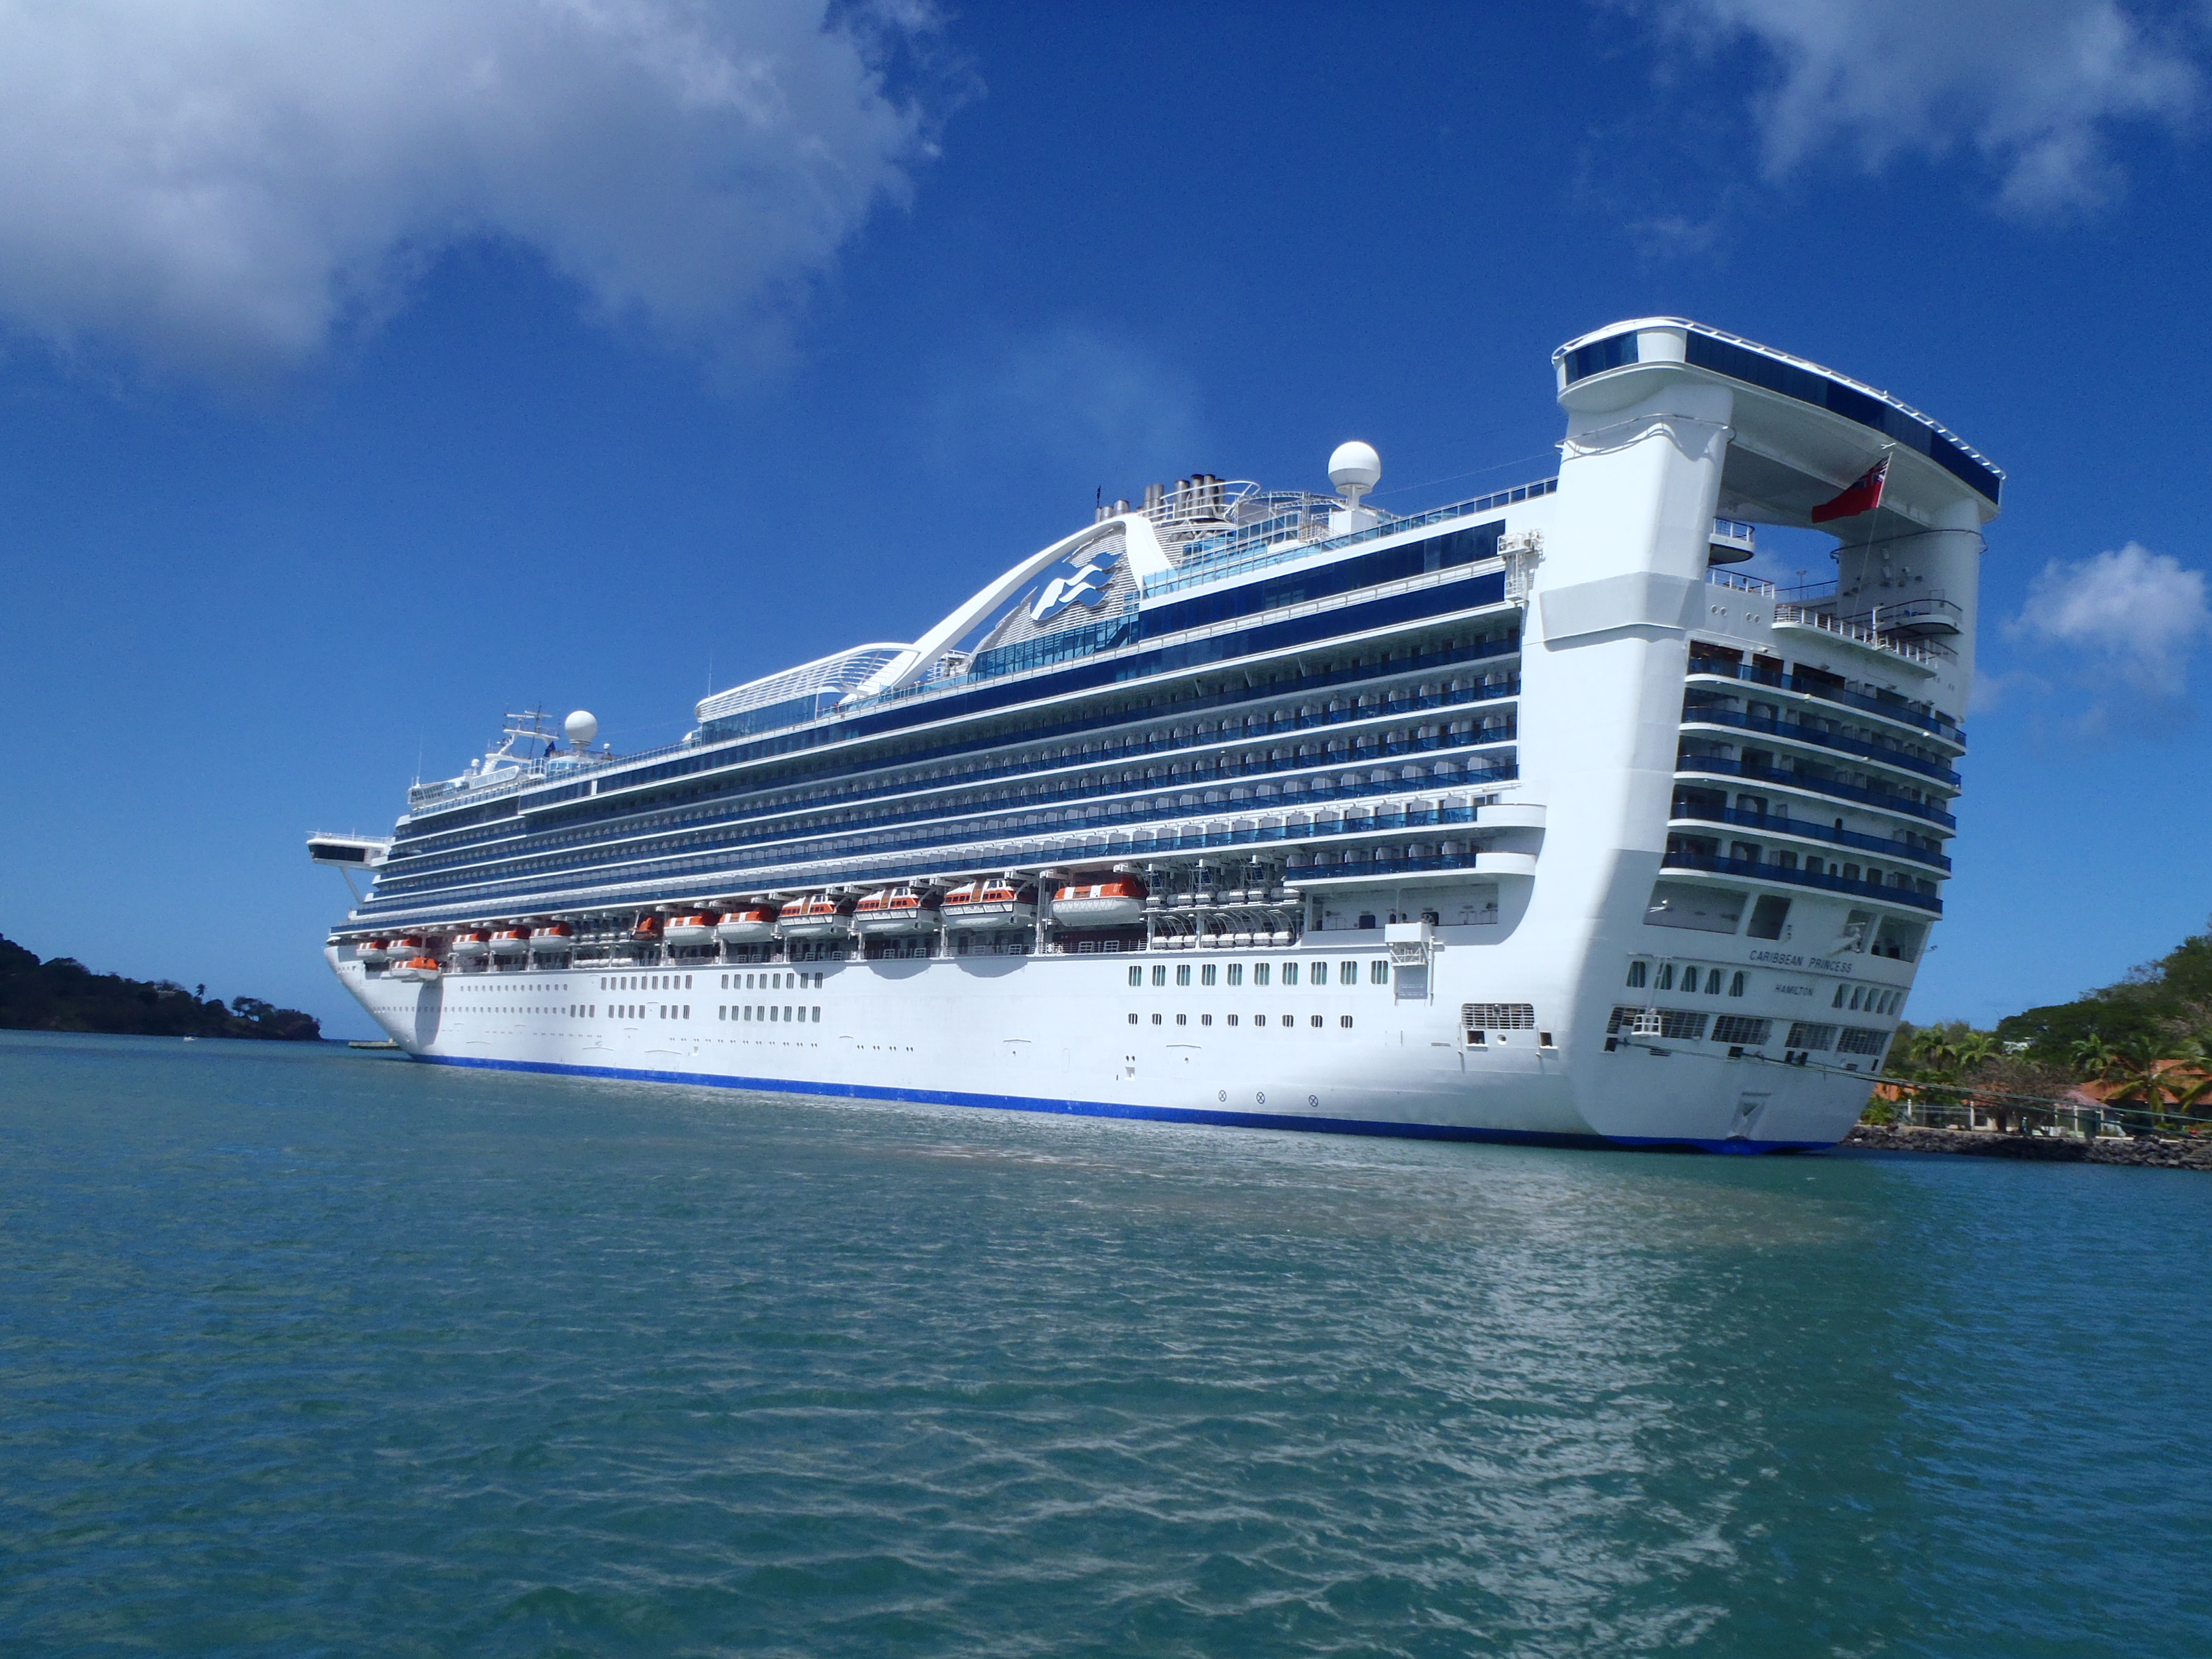 A massive cruise ship docks in bright water.